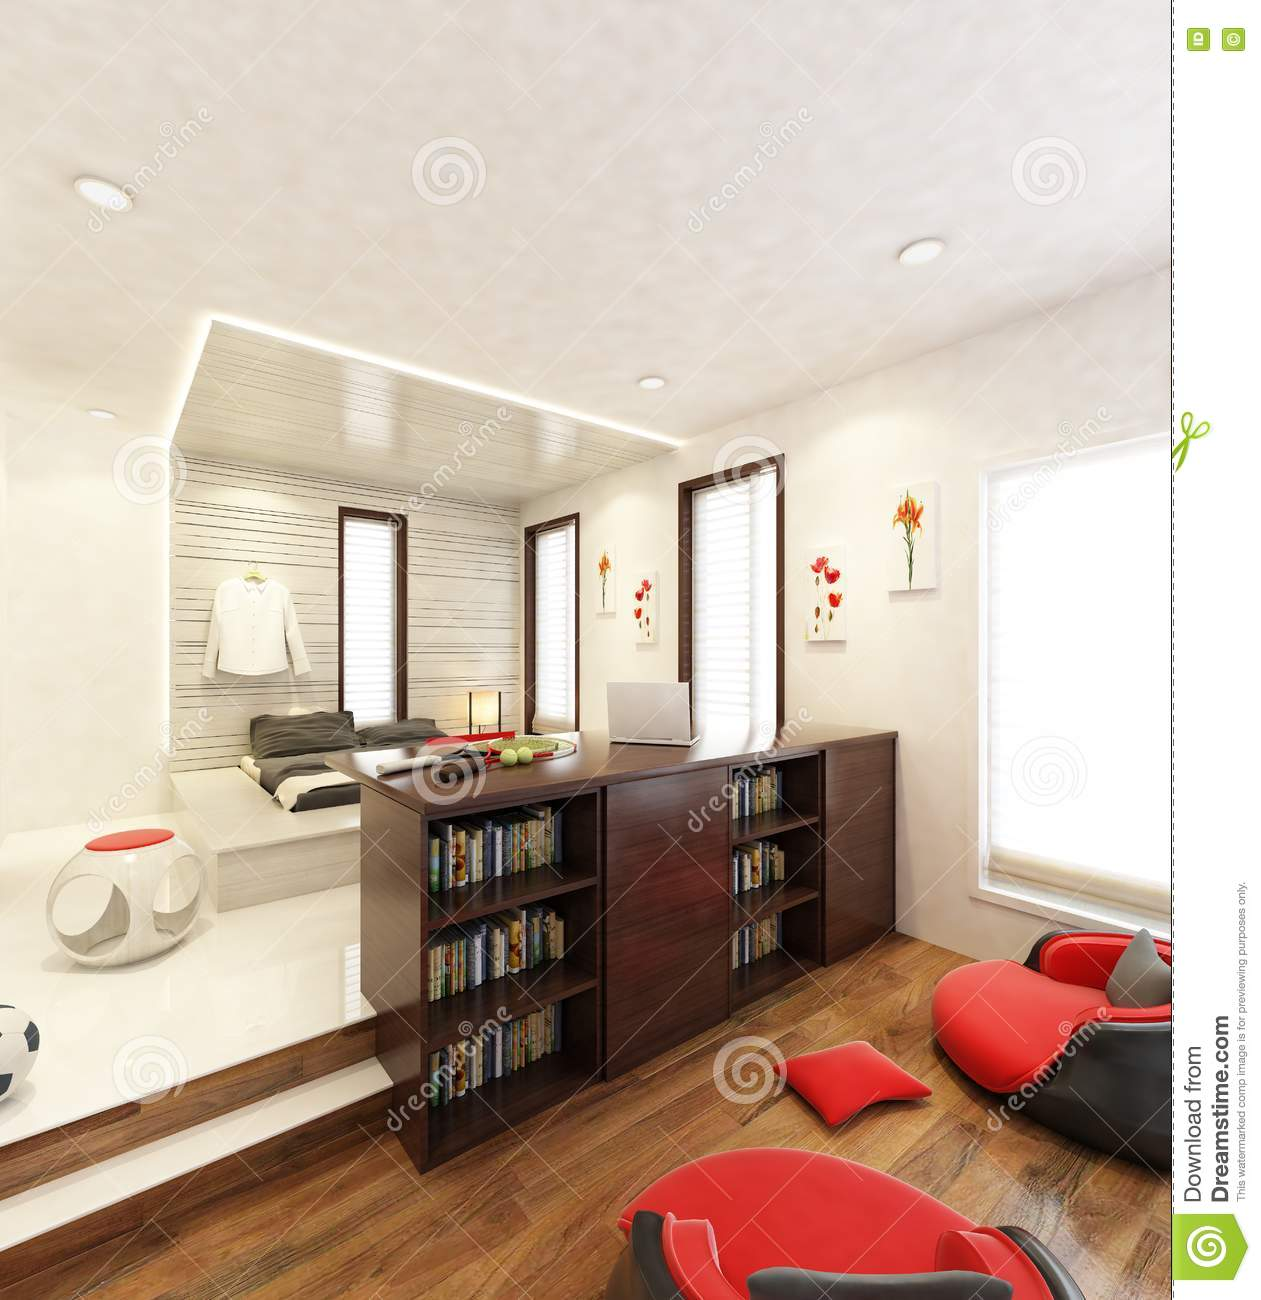 Classic Study Room Design: BED STUDY ROOM 3D Stock Illustration. Illustration Of